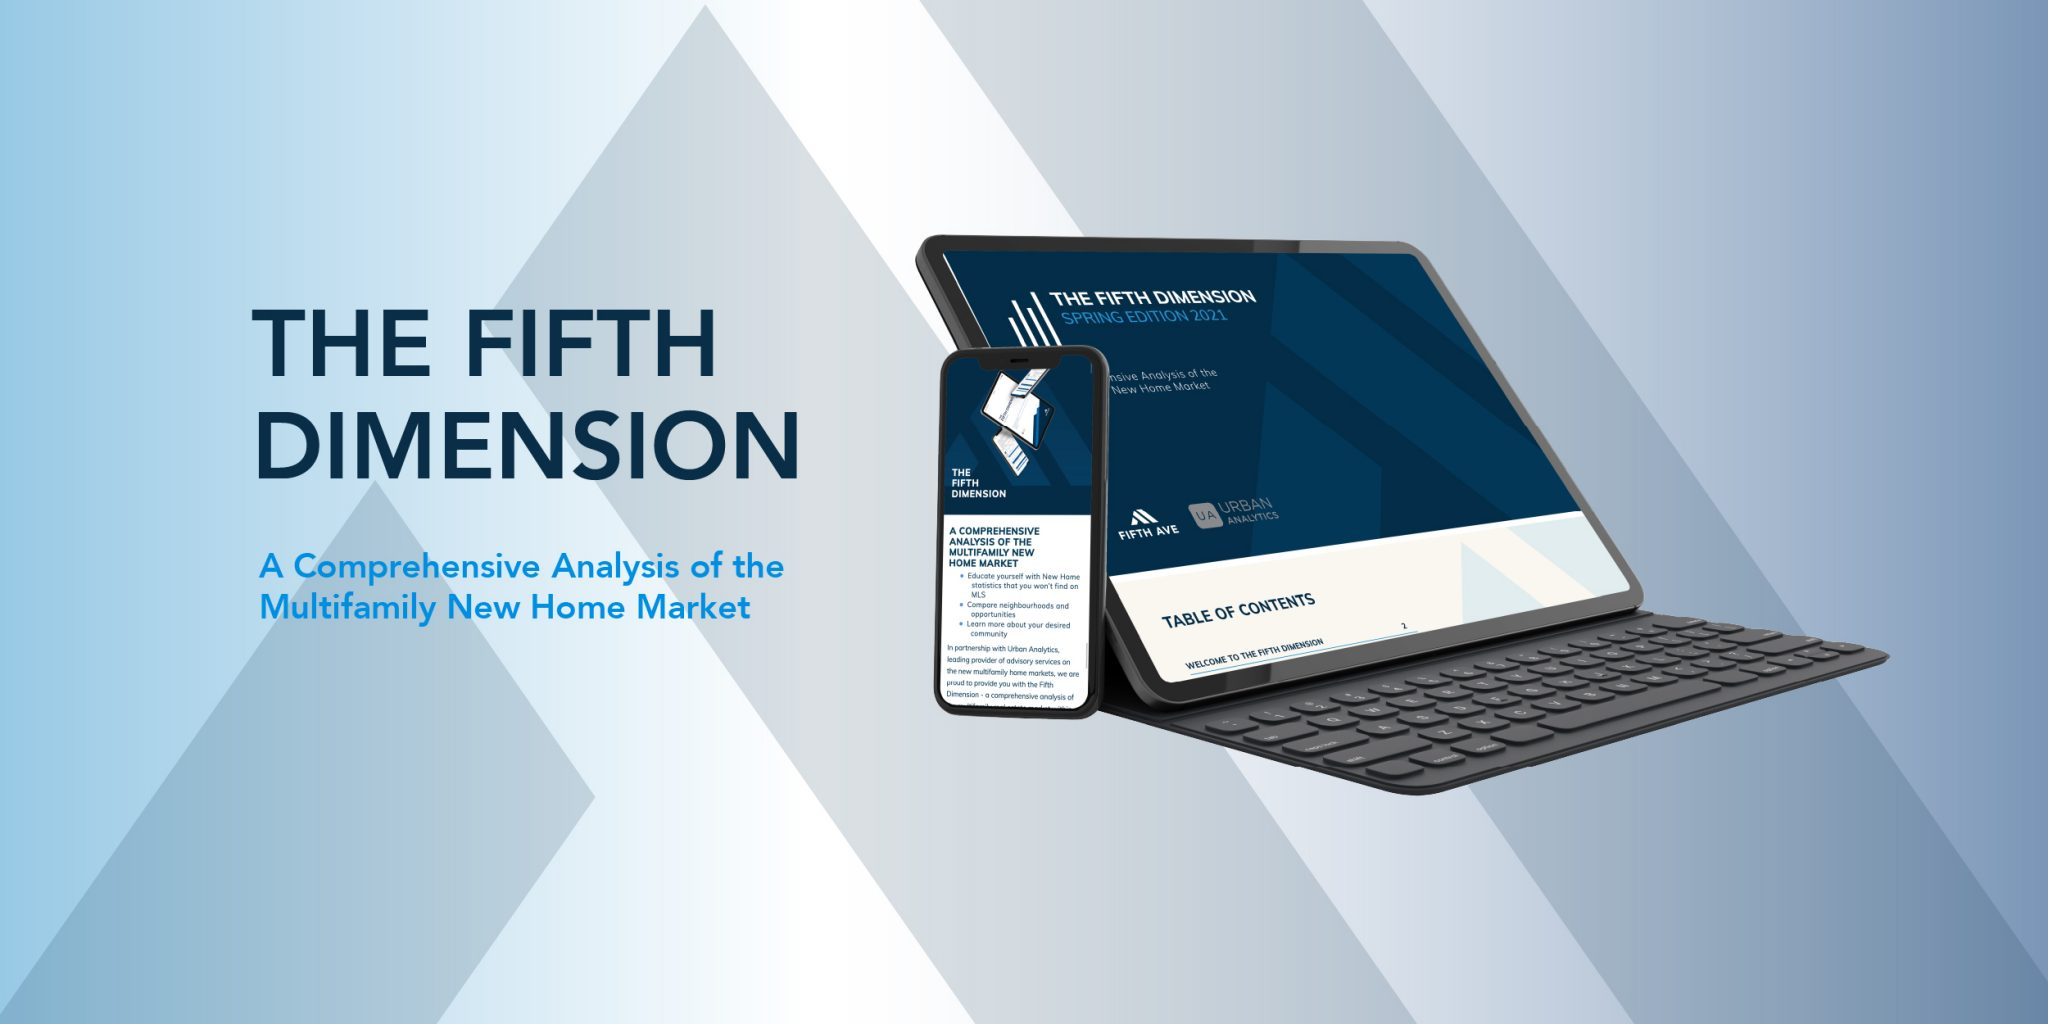 In this Summer edition of the Fifth Dimension, we chronicle the sustained growth in the new multifamily market since the onset of the global pandemic over a year ago.